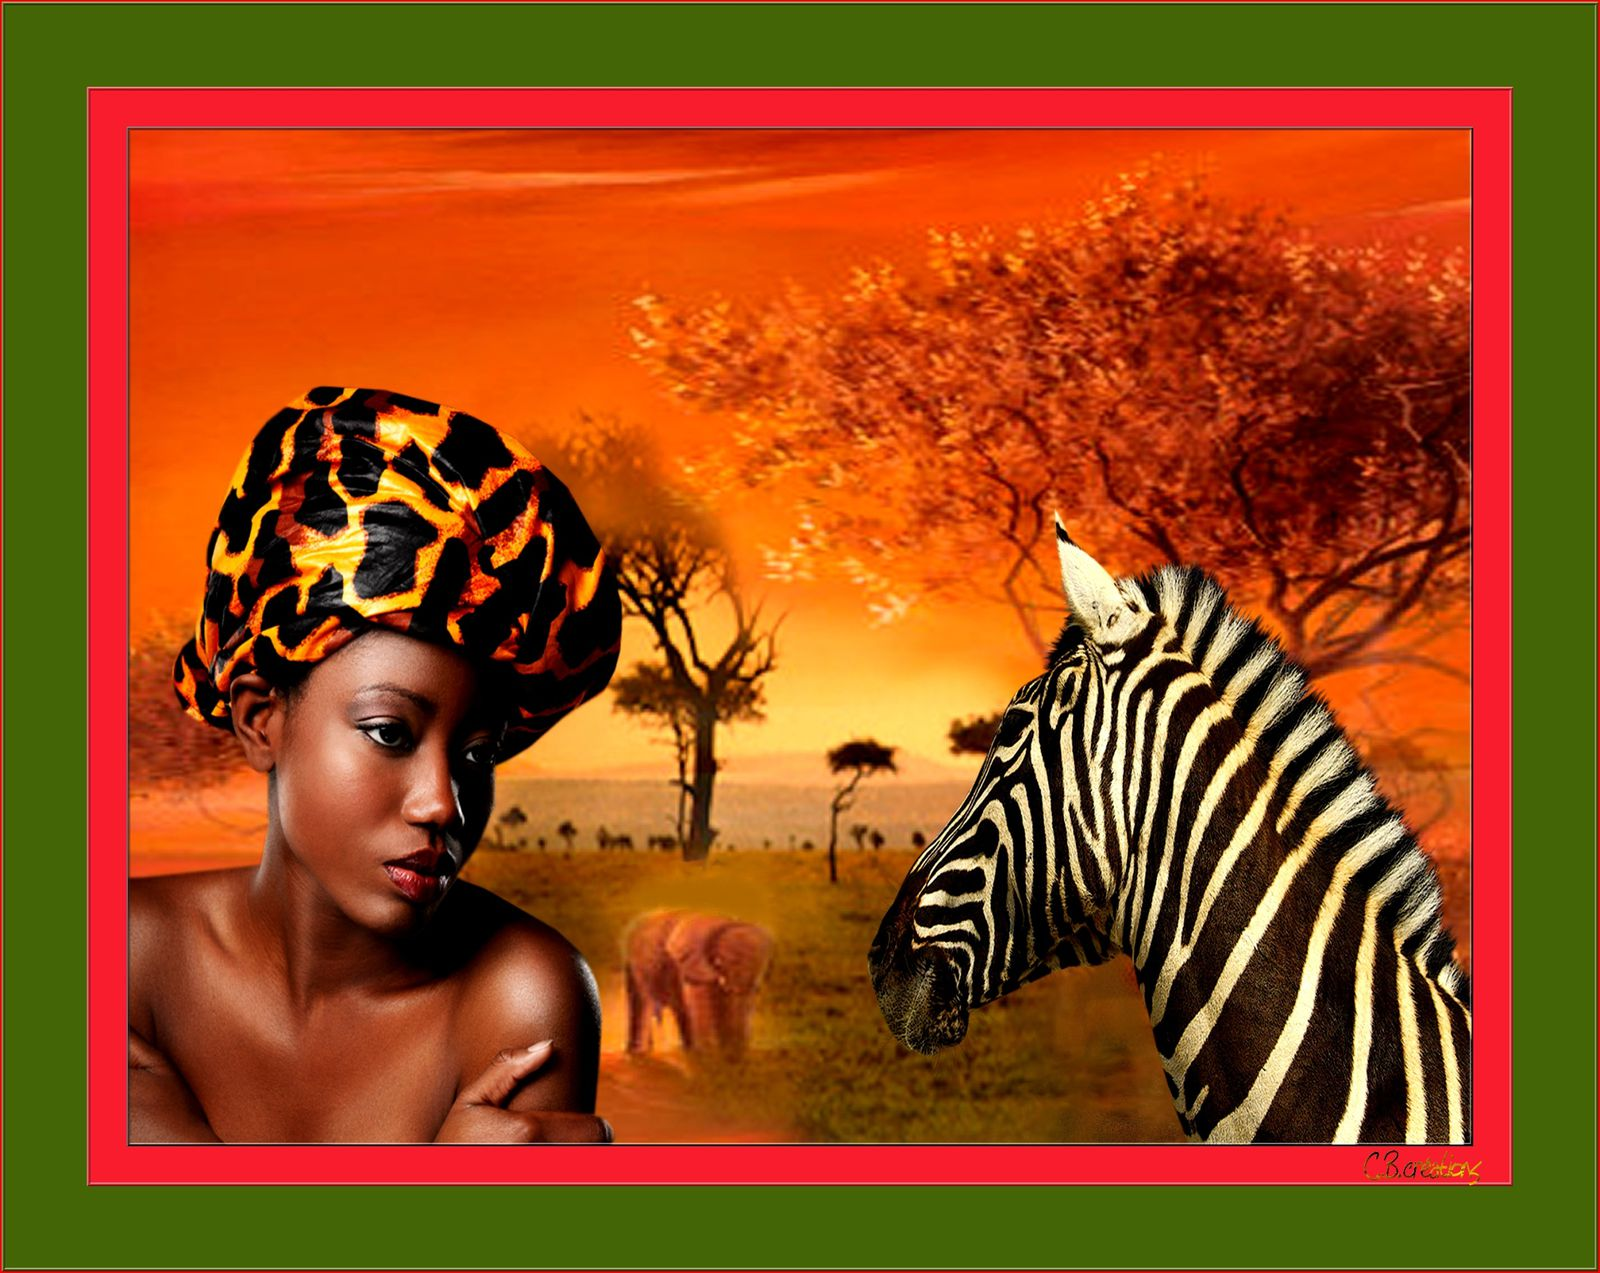 http://idata.over-blog.com/3/91/86/55/TENDRESSE/COULEUR-AFRICAINE/1380.jpg